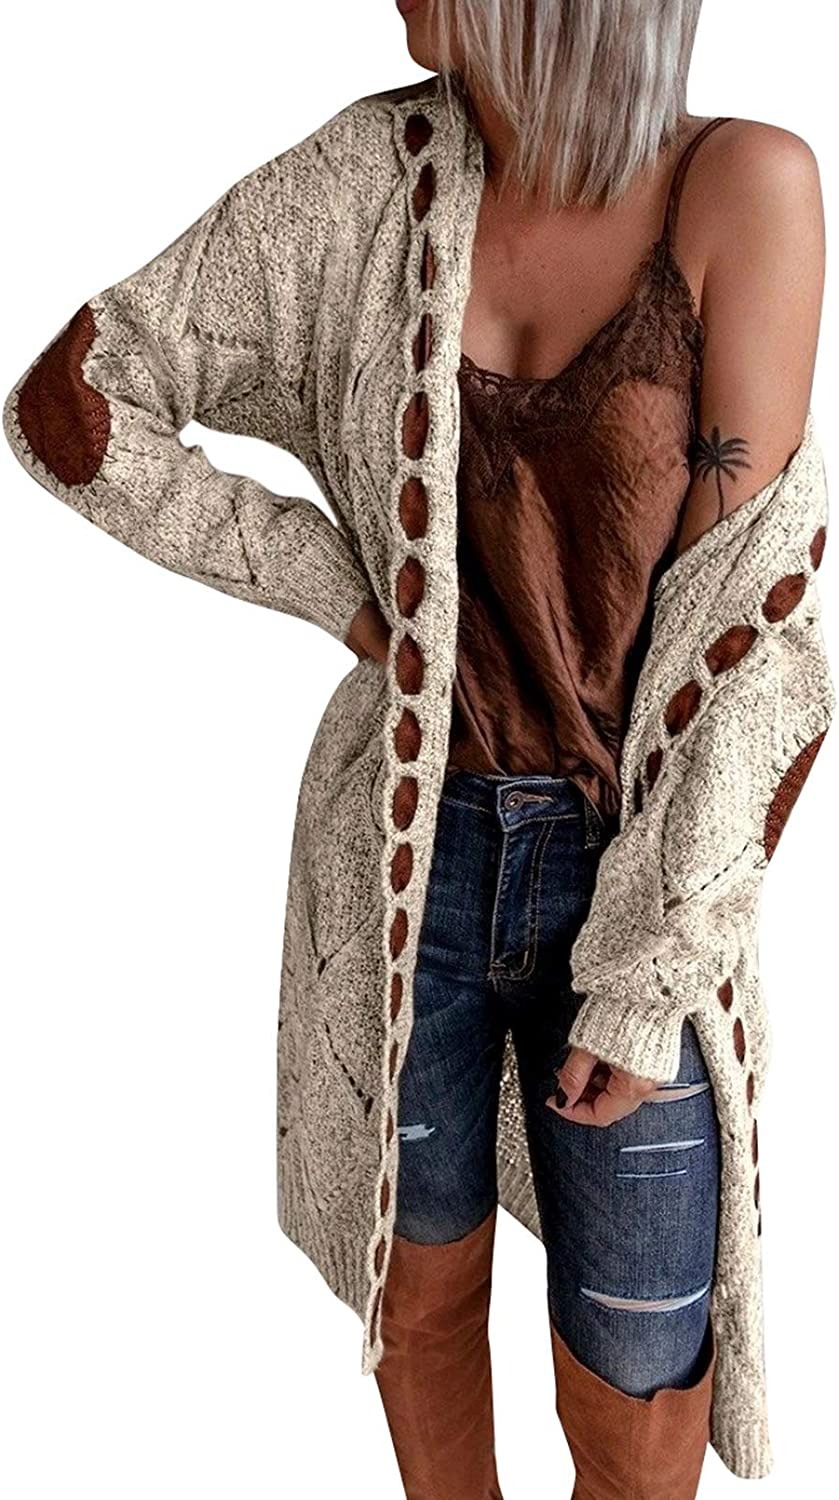 TOLENY Women's Vintage Patchwork Long Cardigan Long Sleeve Open Front Cable Knit Loose Sweater